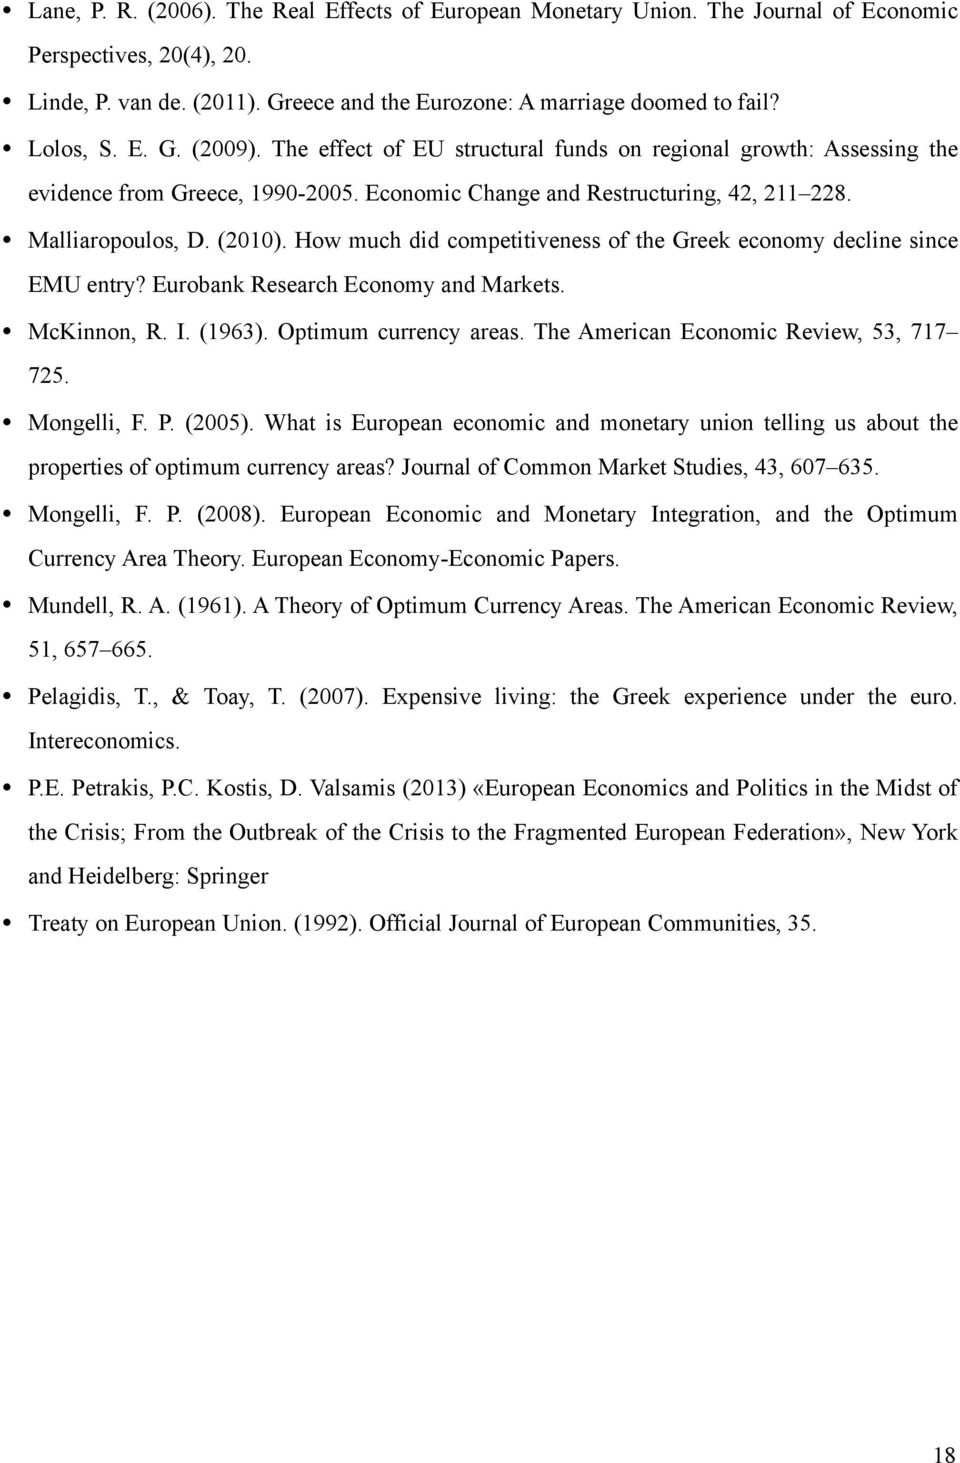 How much did competitiveness of the Greek economy decline since EMU entry? Eurobank Research Economy and Markets. McKinnon, R. I. (1963). Optimum currency areas.